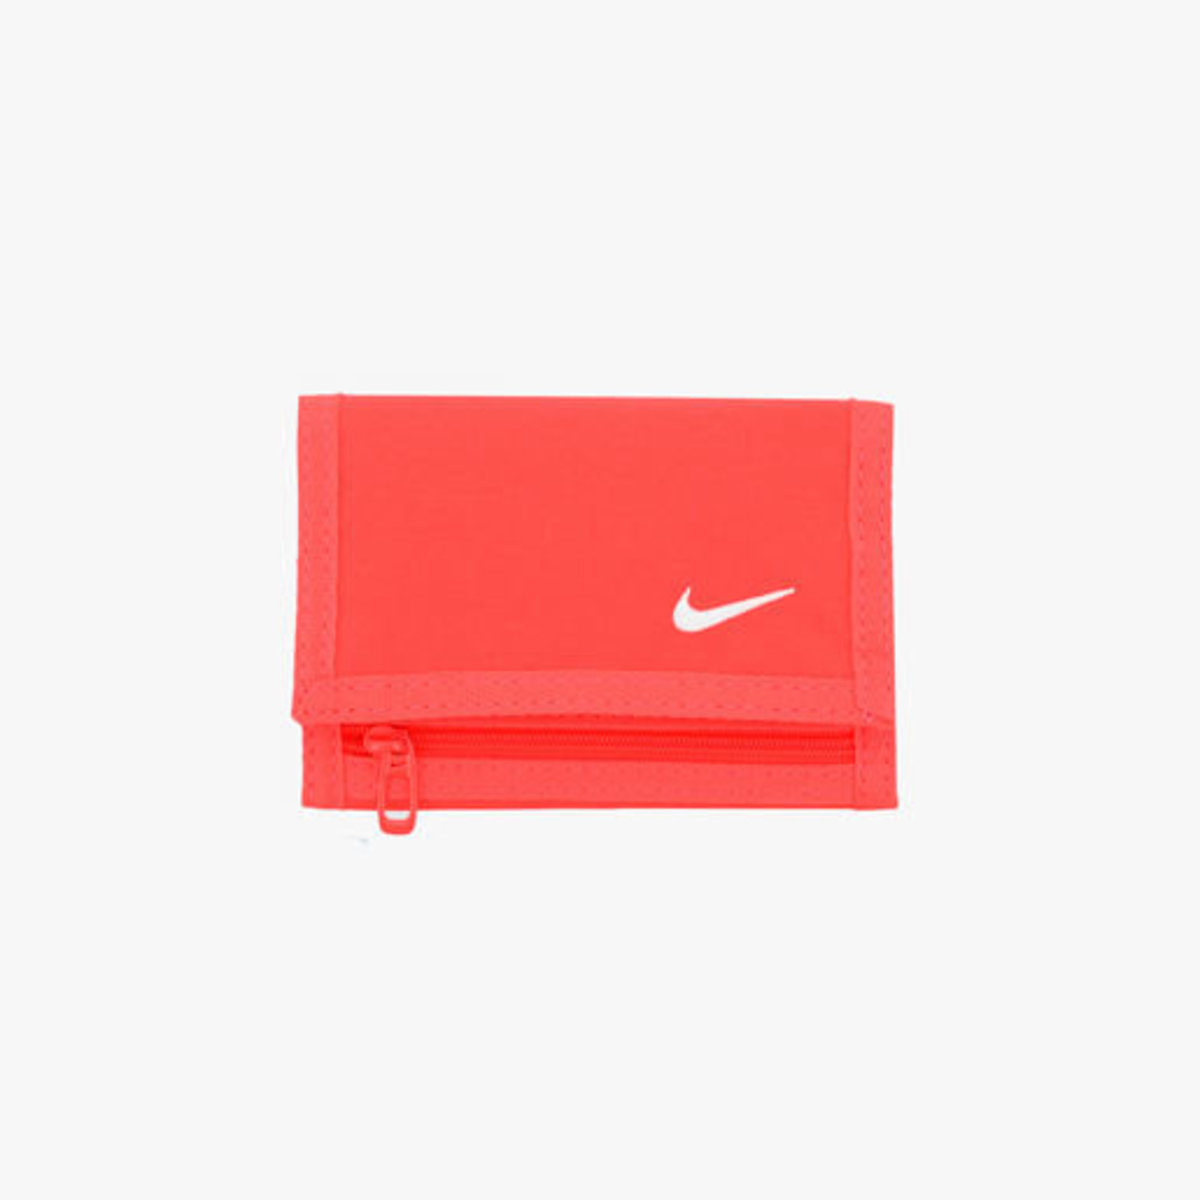 Tri-fold Red Wallet, Convenient and high durability